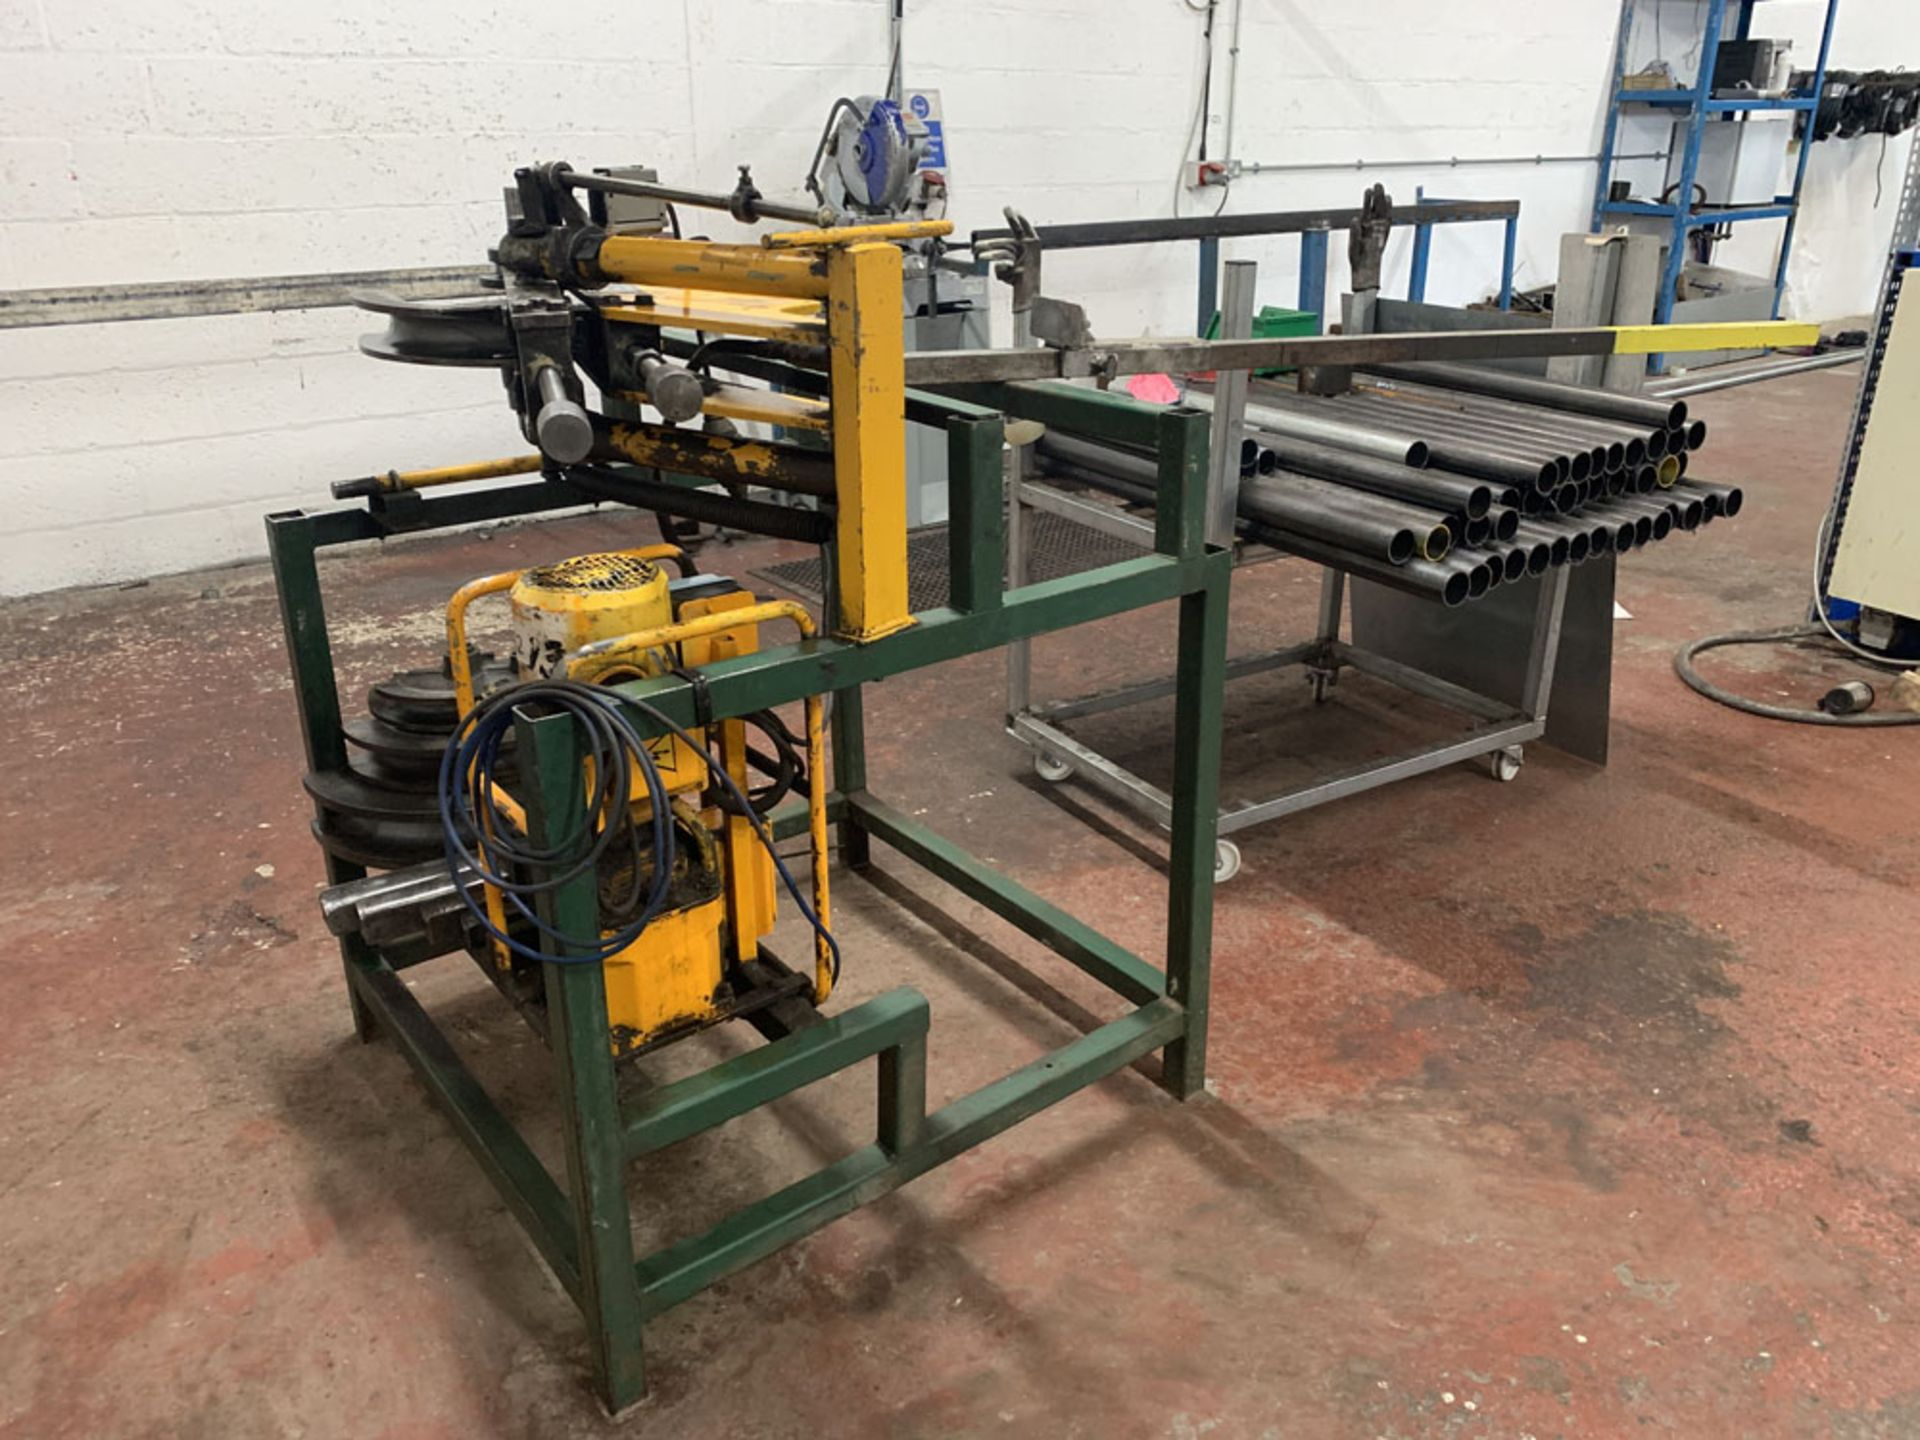 Lot 18 - APB (Anglia Power Bend Limited) Model RH3 Hydraulic tube bending machine. Capacity 60mm.